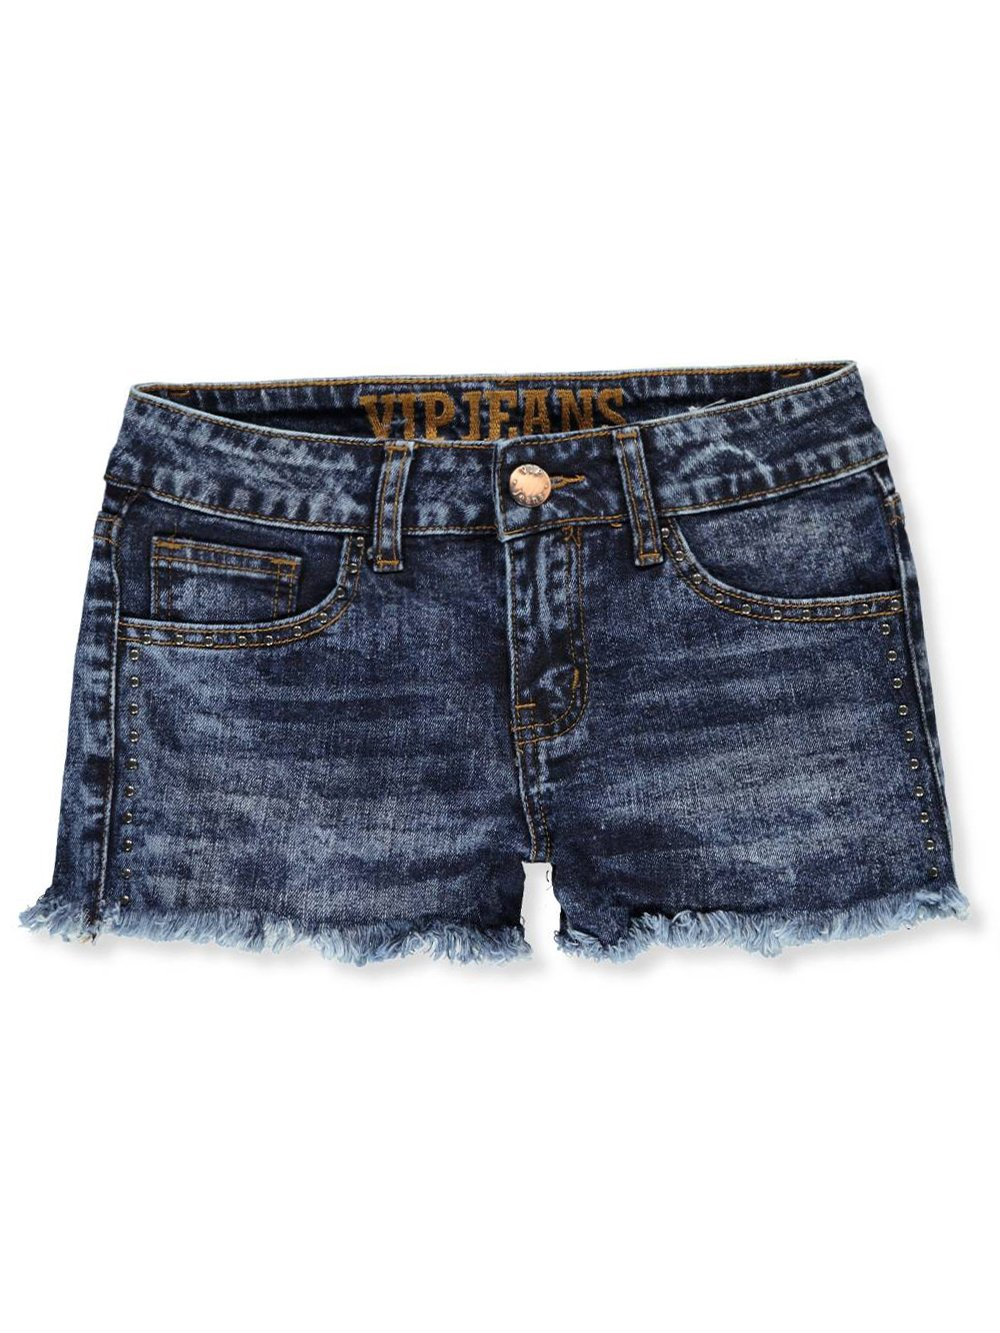 #VIP Jeans Girls' Short Shorts